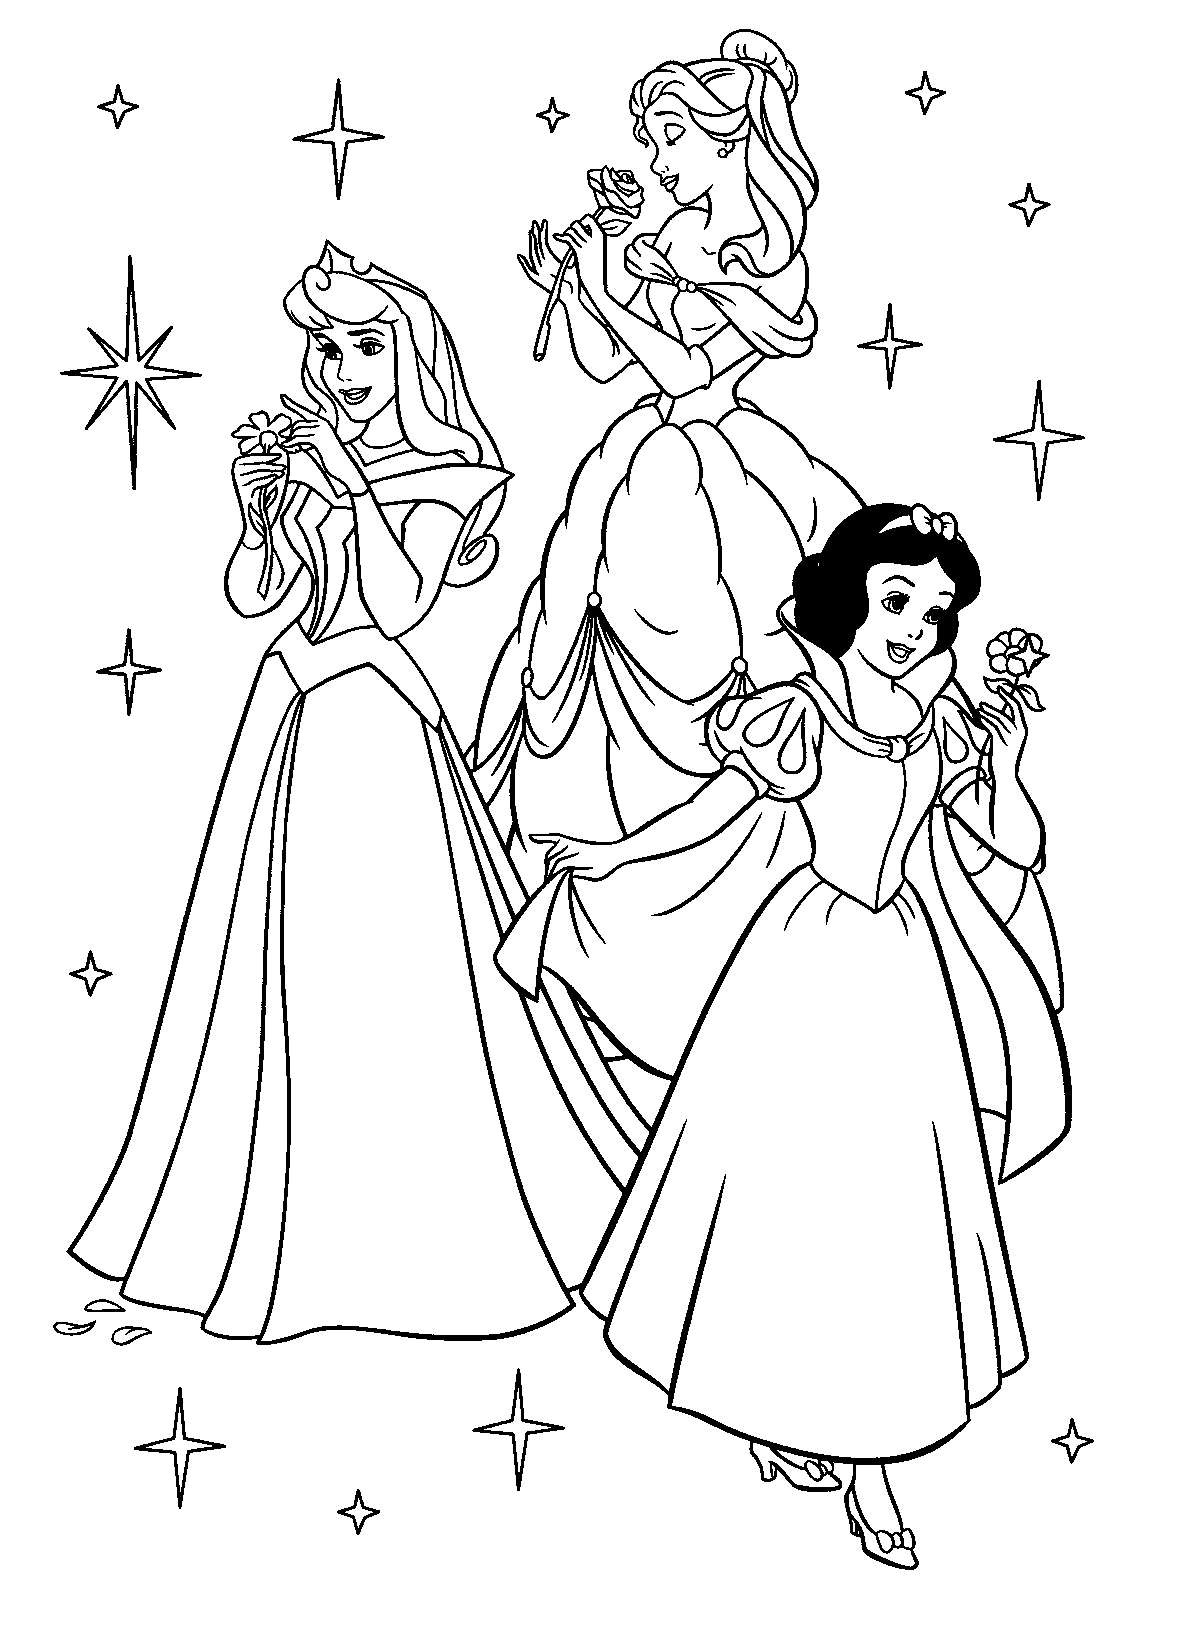 free ariel princess coloring pages - photo#20